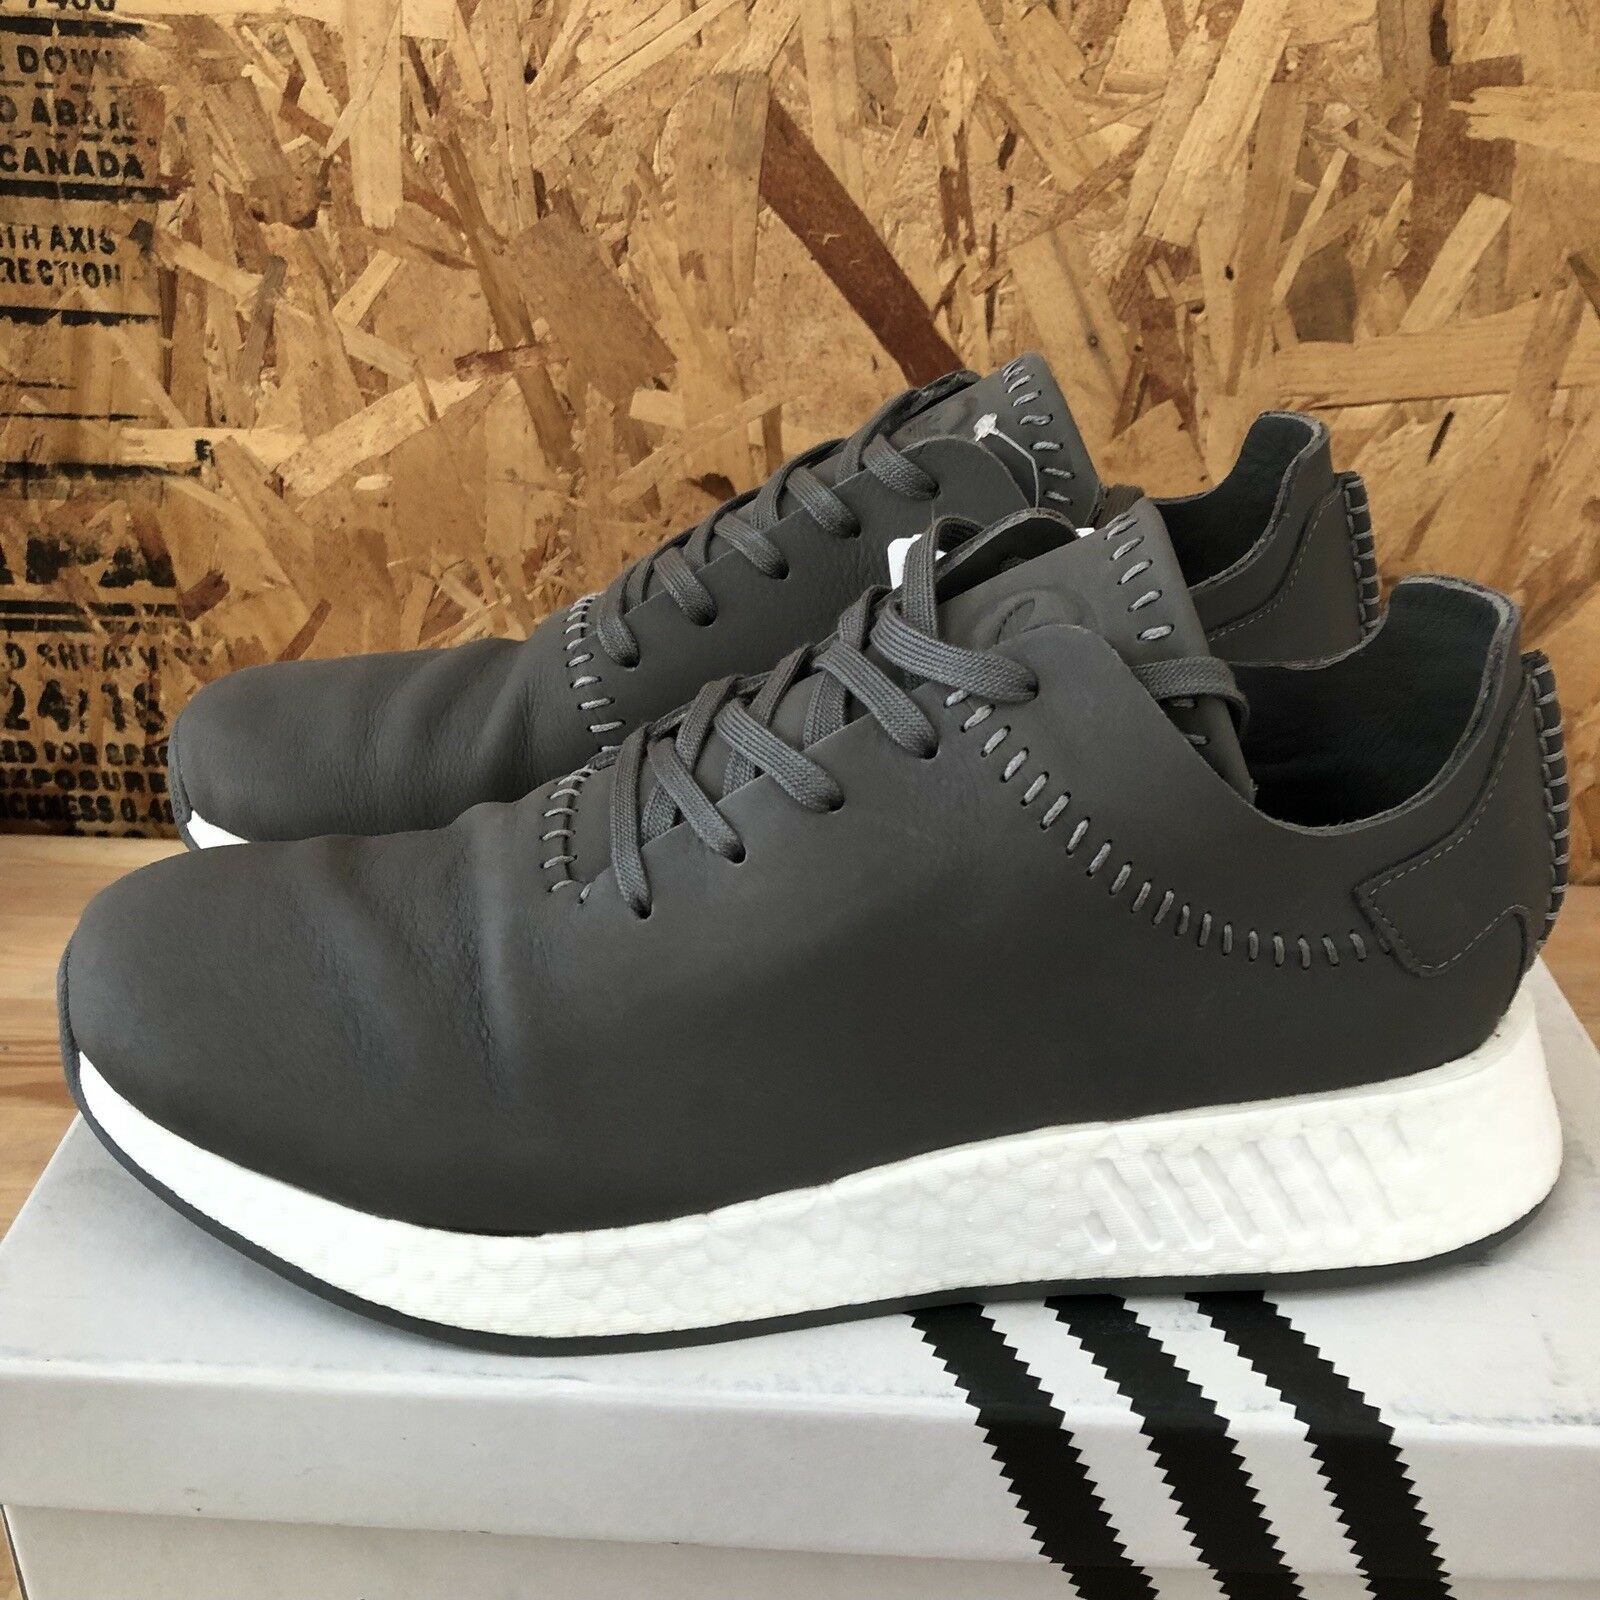 5b07be87b8 Adidas WH NMD BB3117 Ash Grey White Size 10 New R2 - nuduqw864-new ...